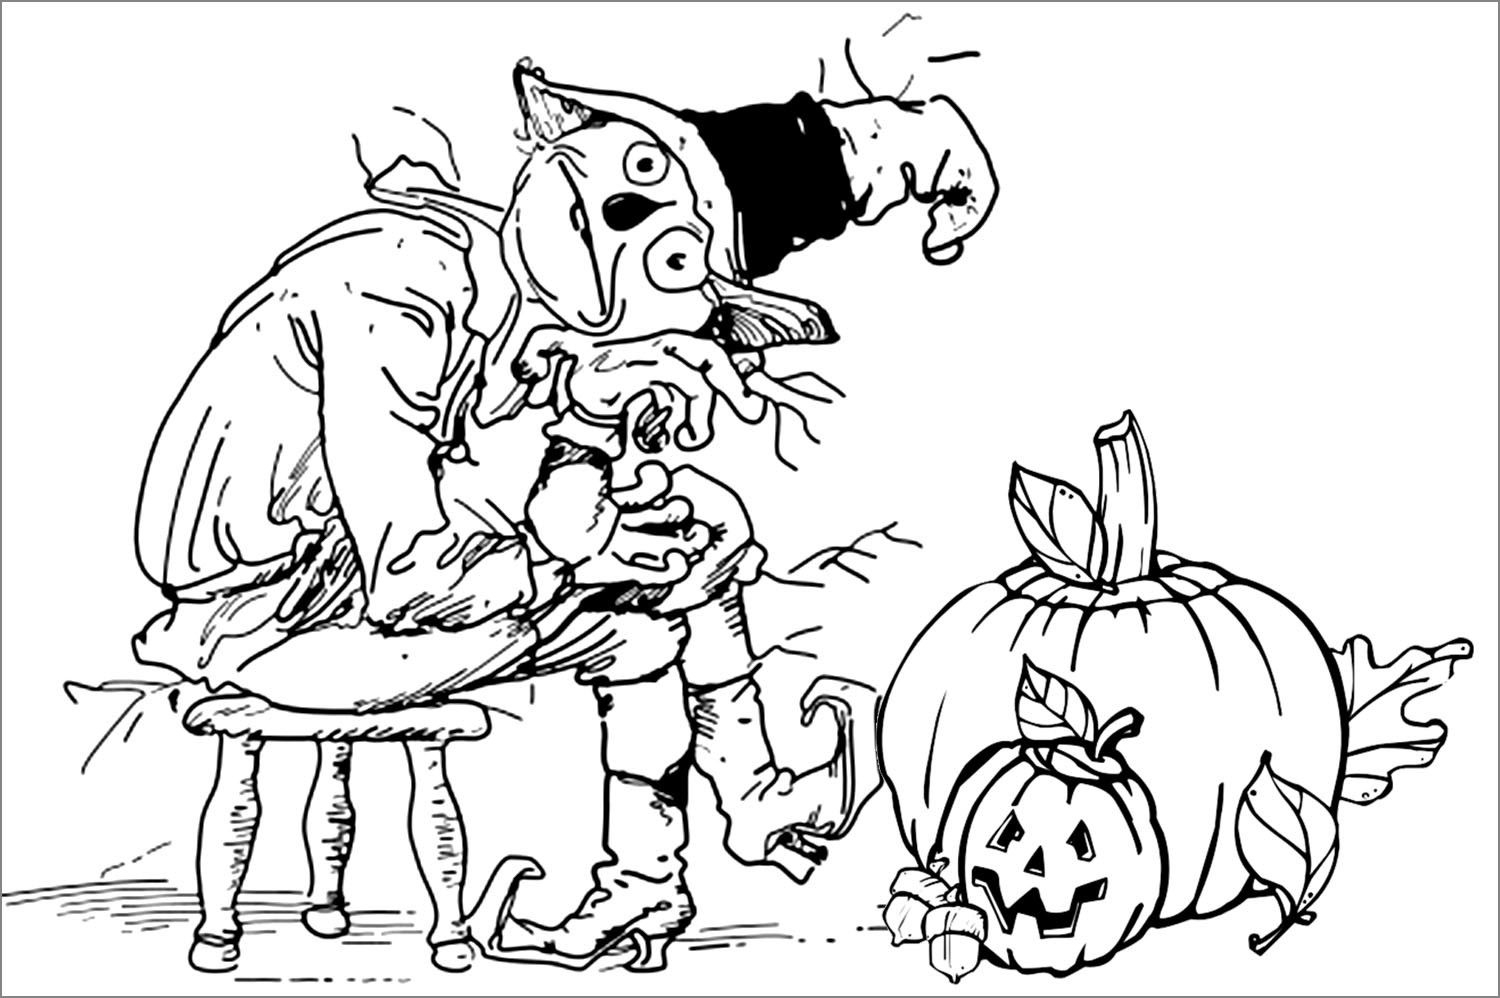 Free Scary Halloween Coloring Pages Beautiful Scary Halloween Coloring Pages Fvgiment